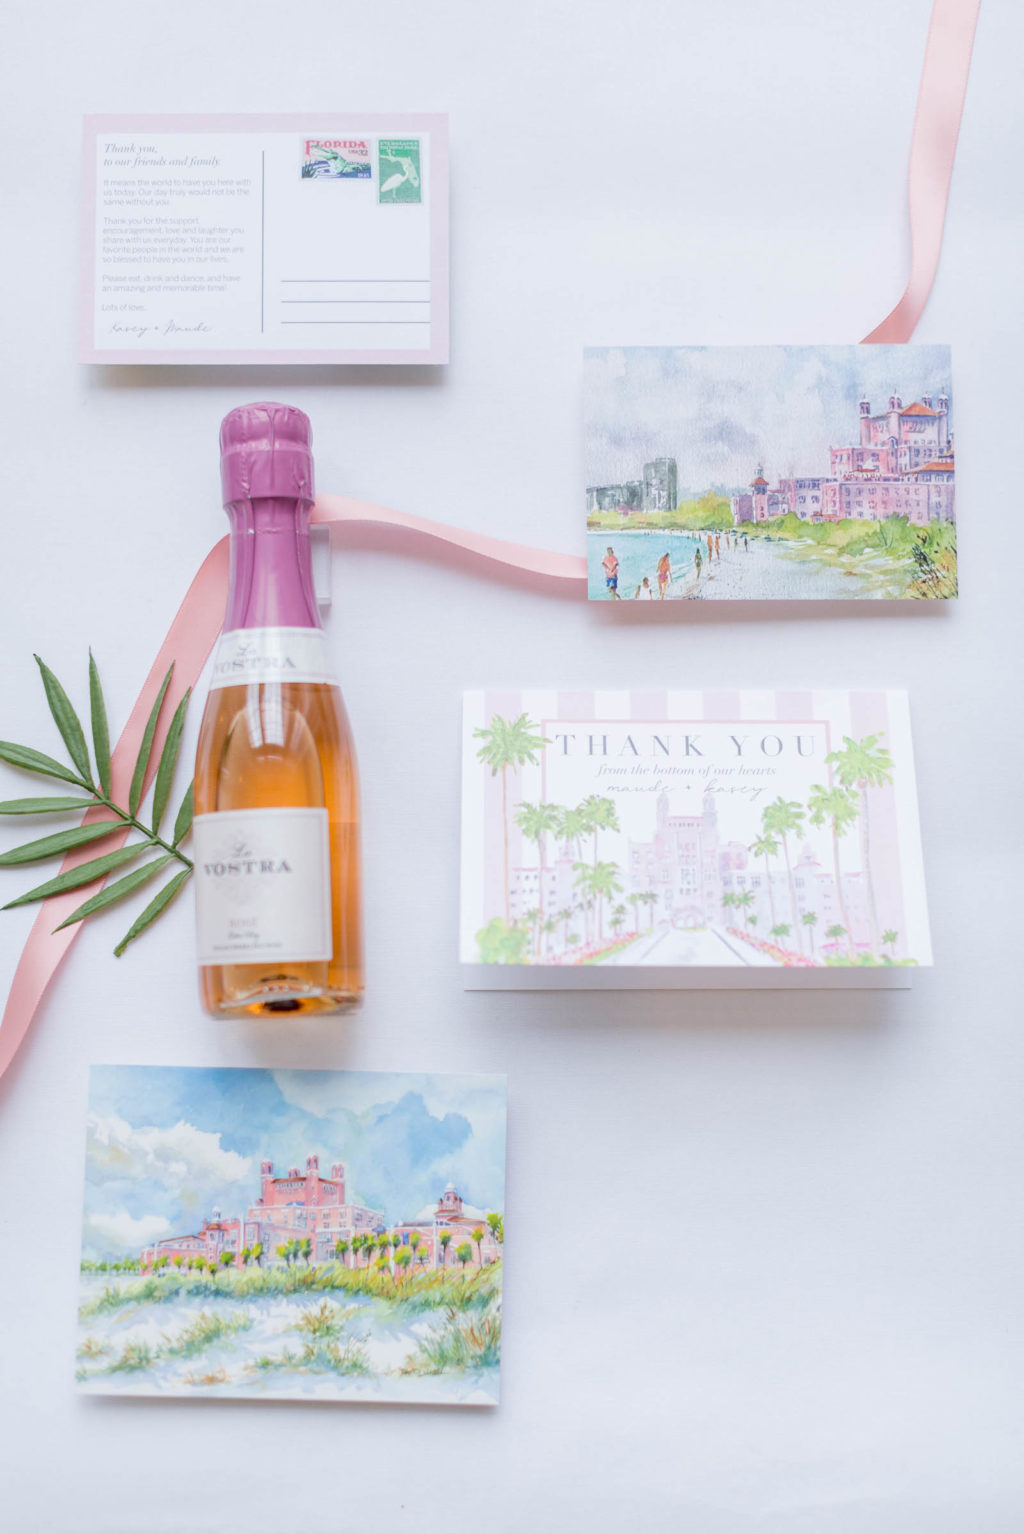 Florida Beach Wedding Stationary with Watercolor Painting Art Drawing of the Pink Palace | St. Pete Beach Wedding Venue The Don CeSar